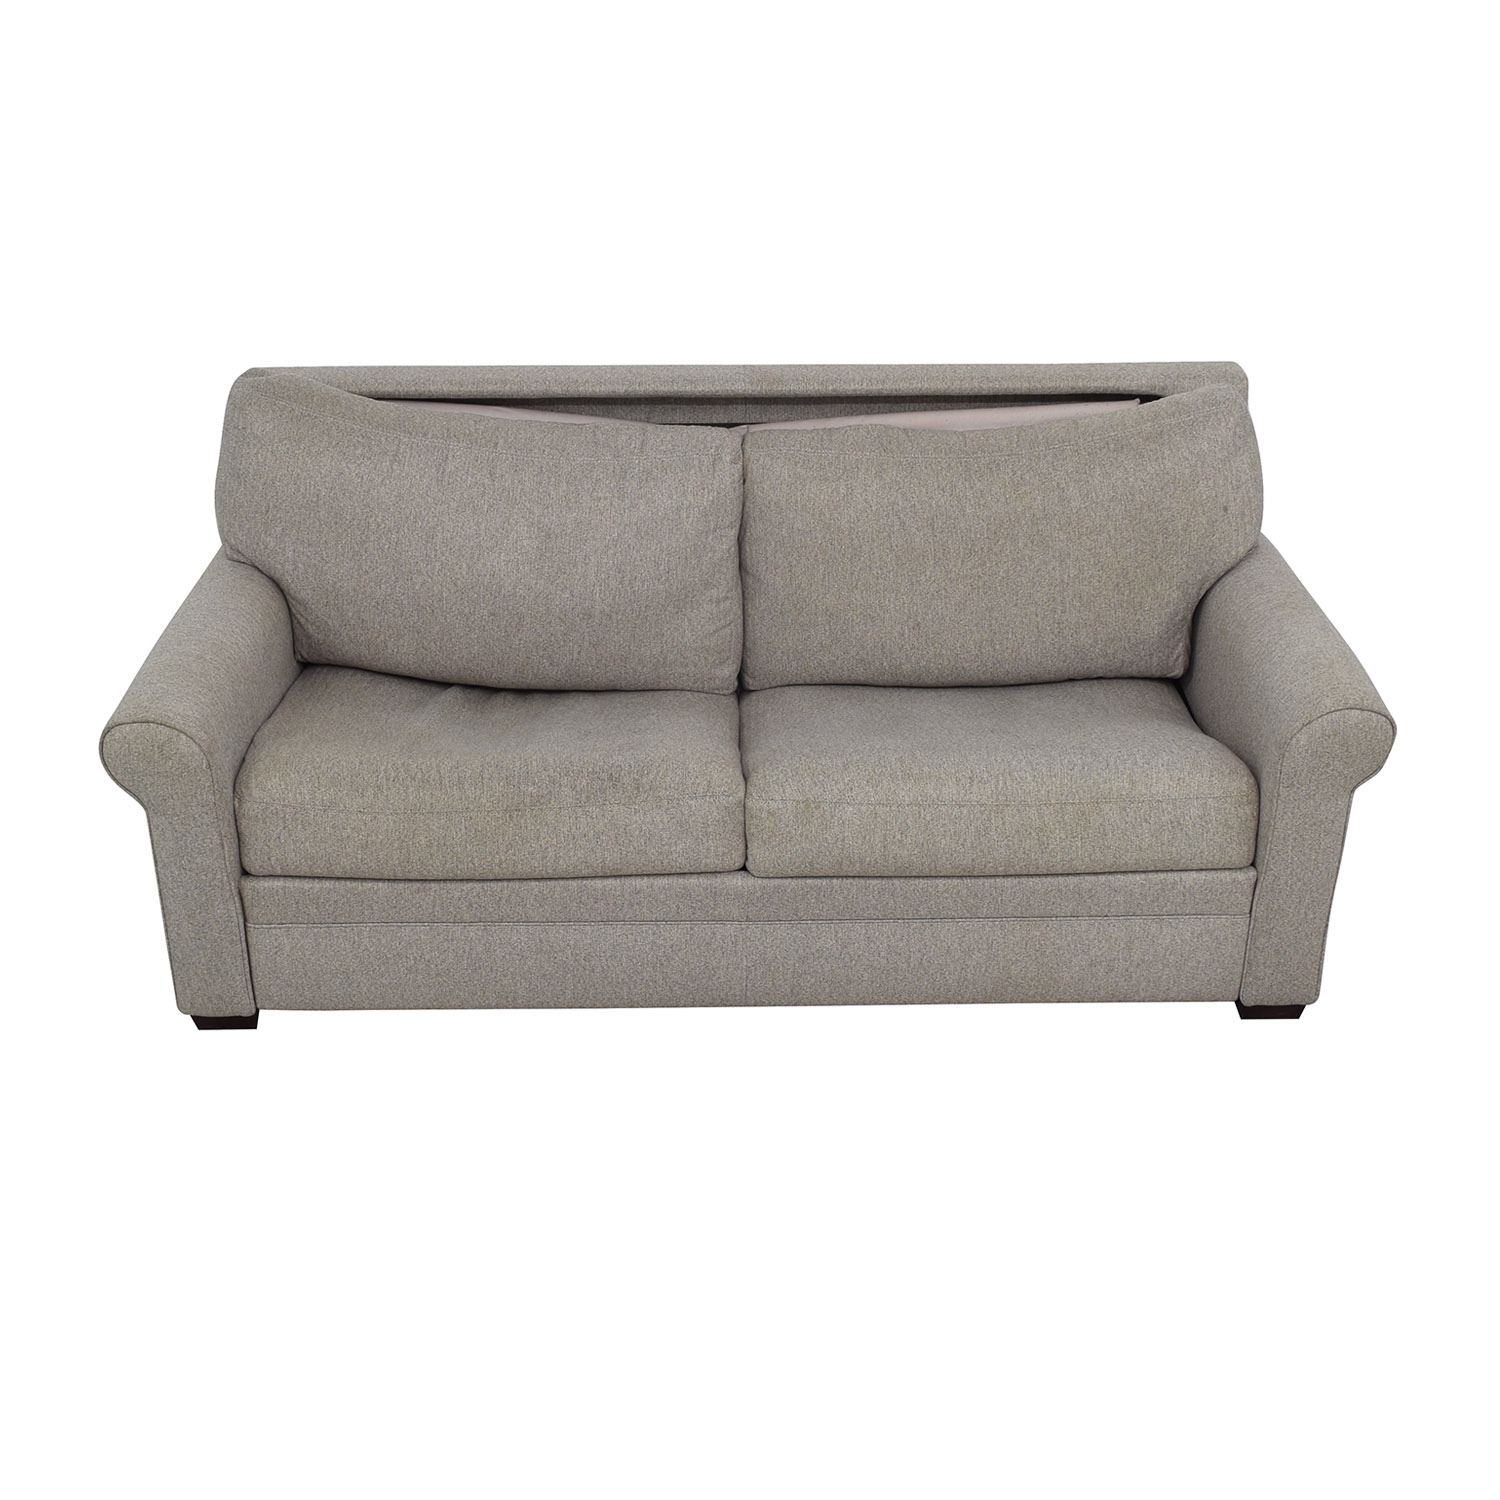 shop American Leather Gaines Queen Sleeper Sofa American Leather